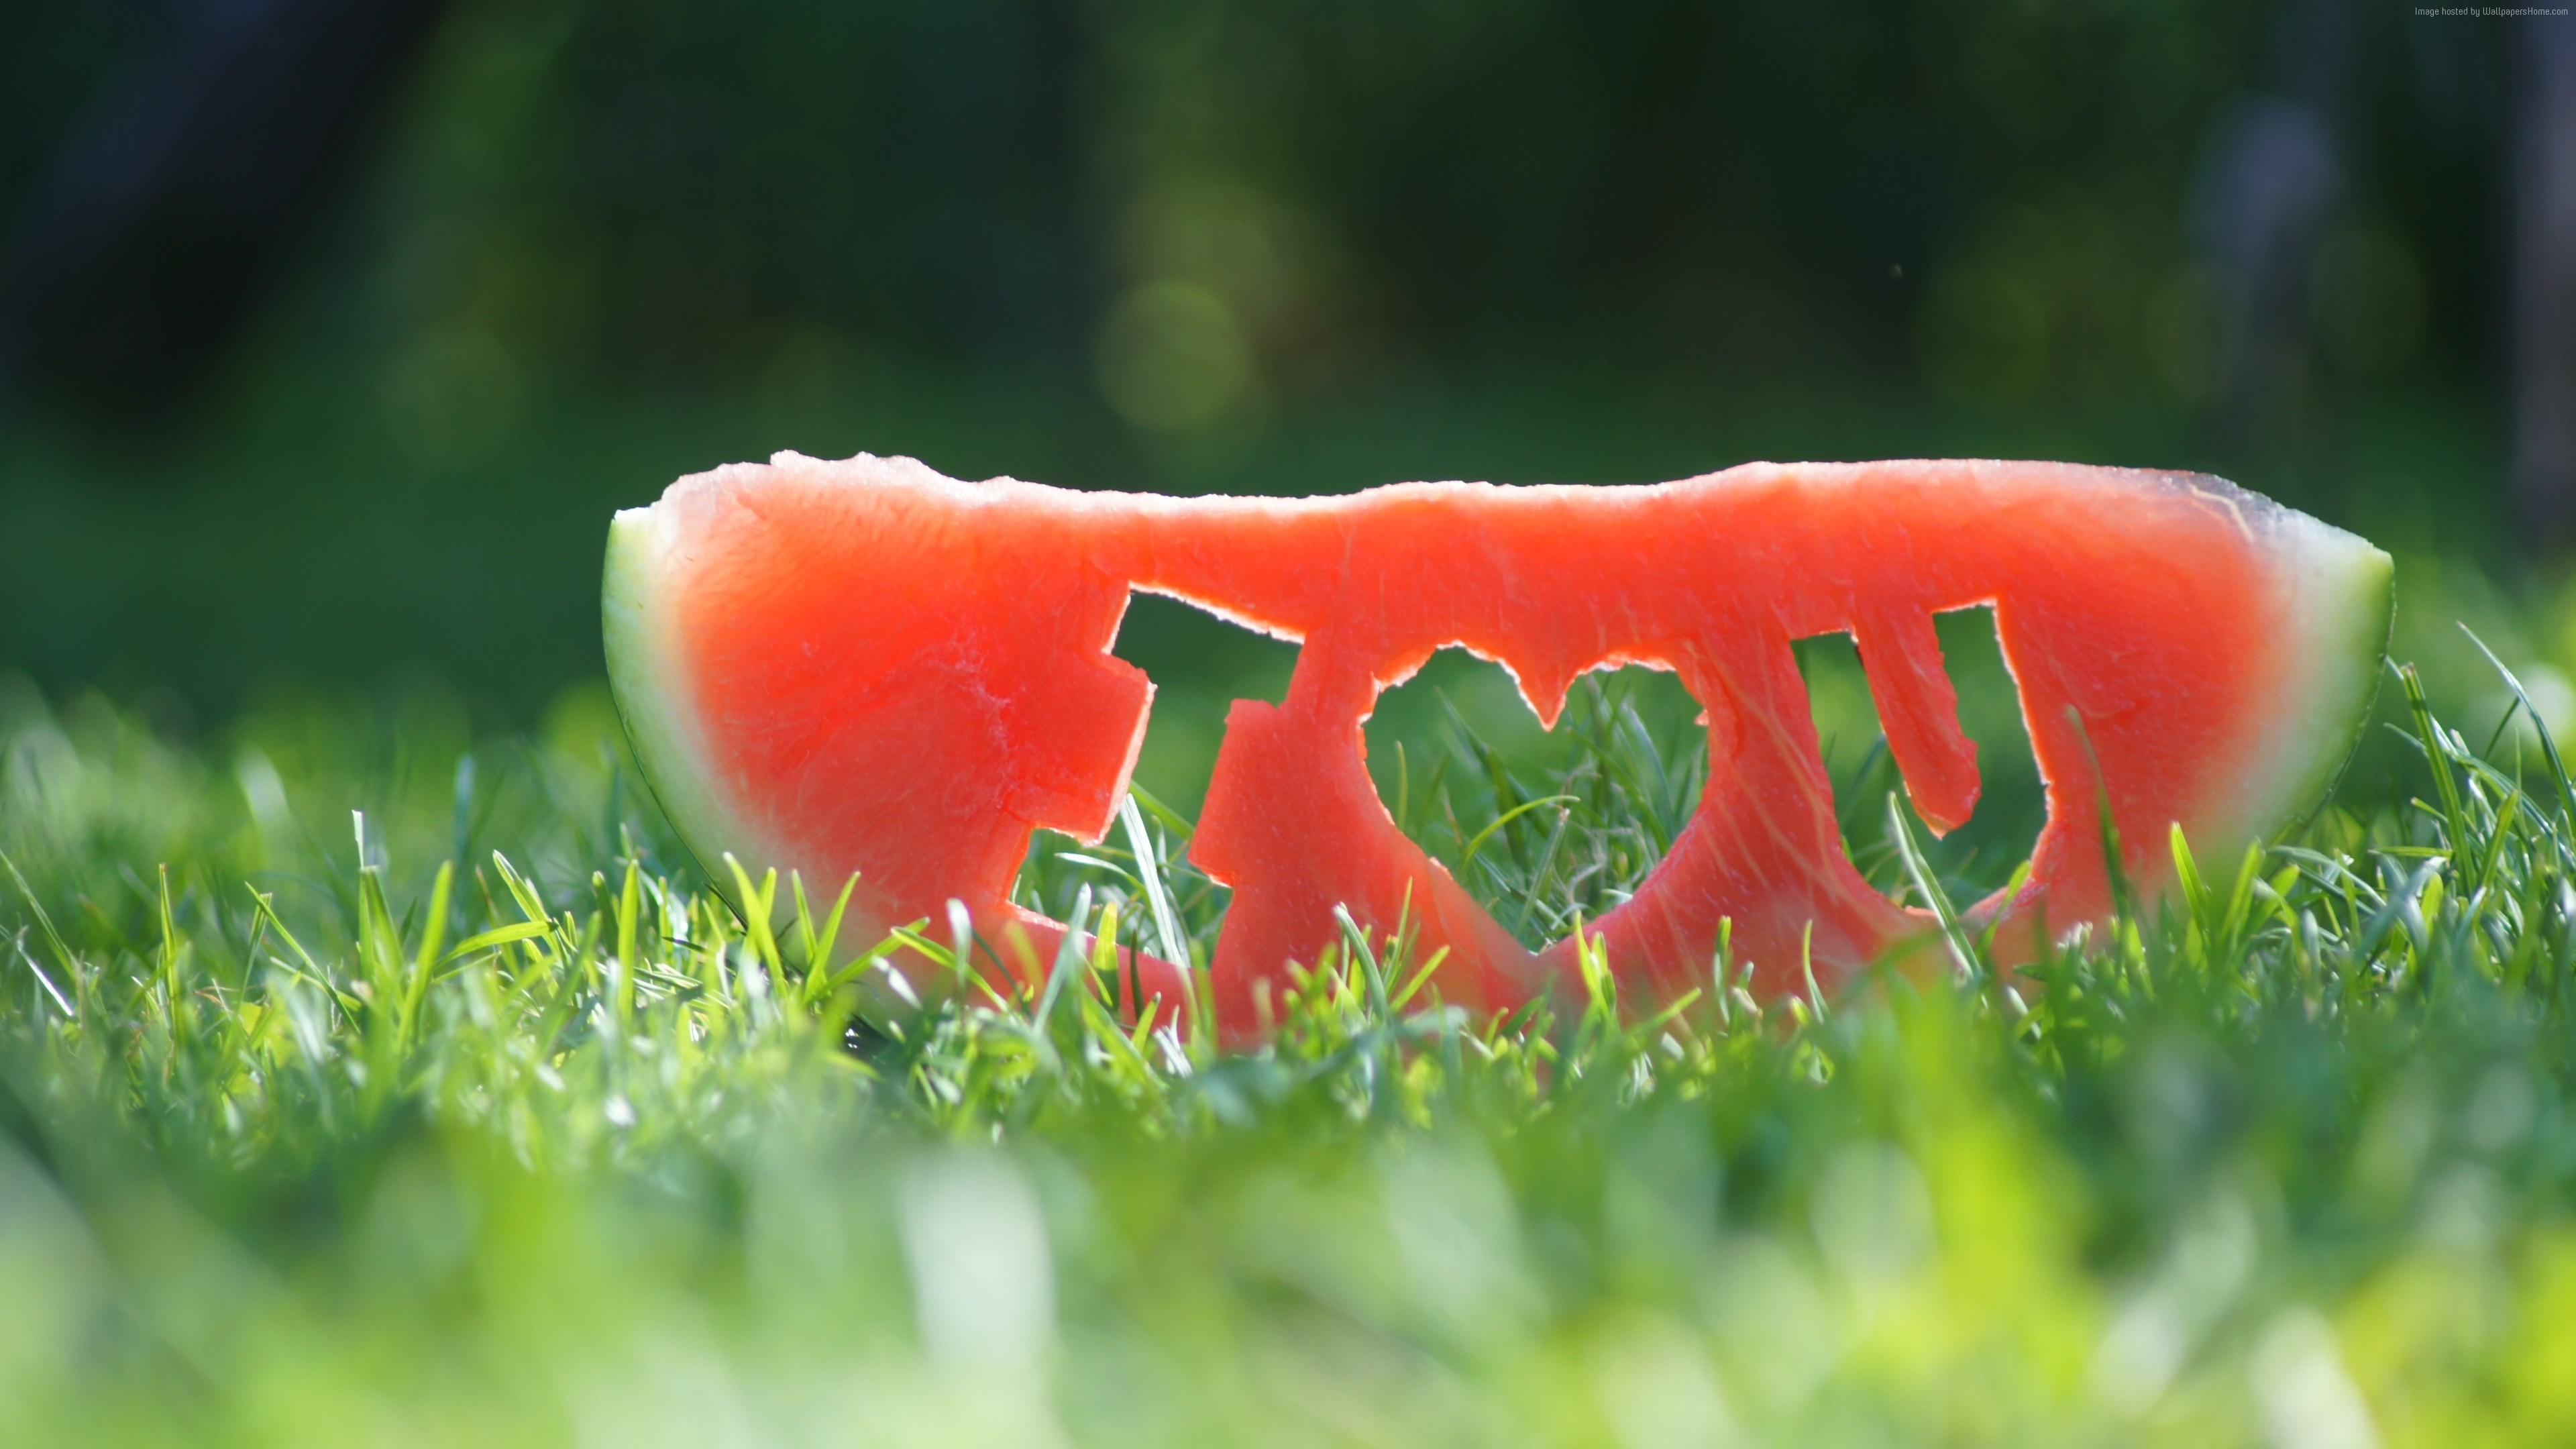 Stock Images love image, watermelon, grass, 4k, Stock Images